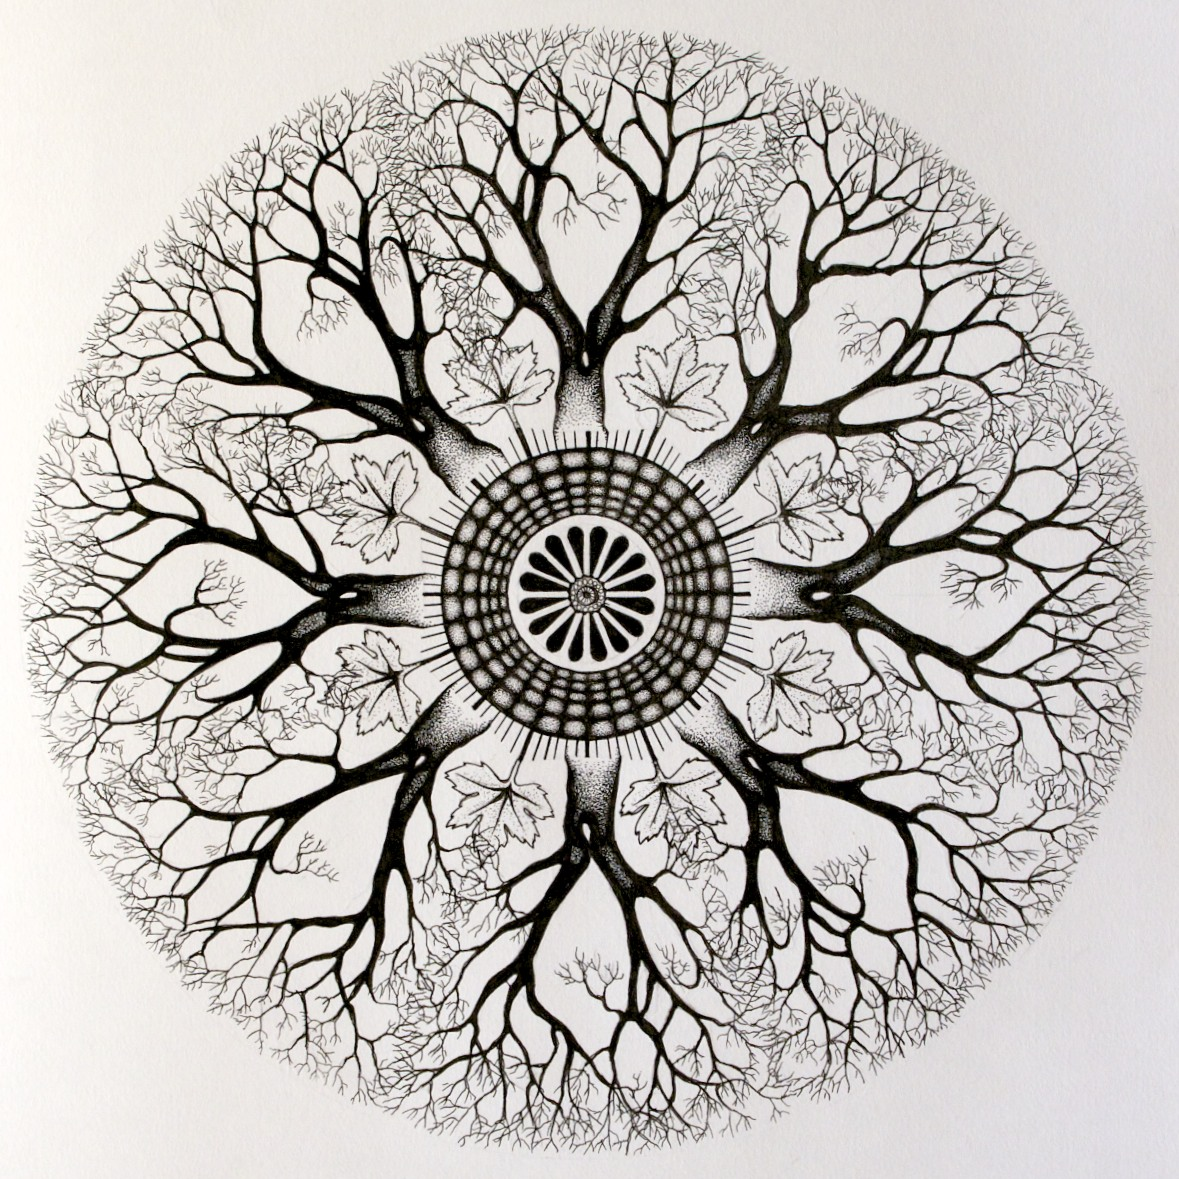 Gallery For gt Tree Mandala Designs